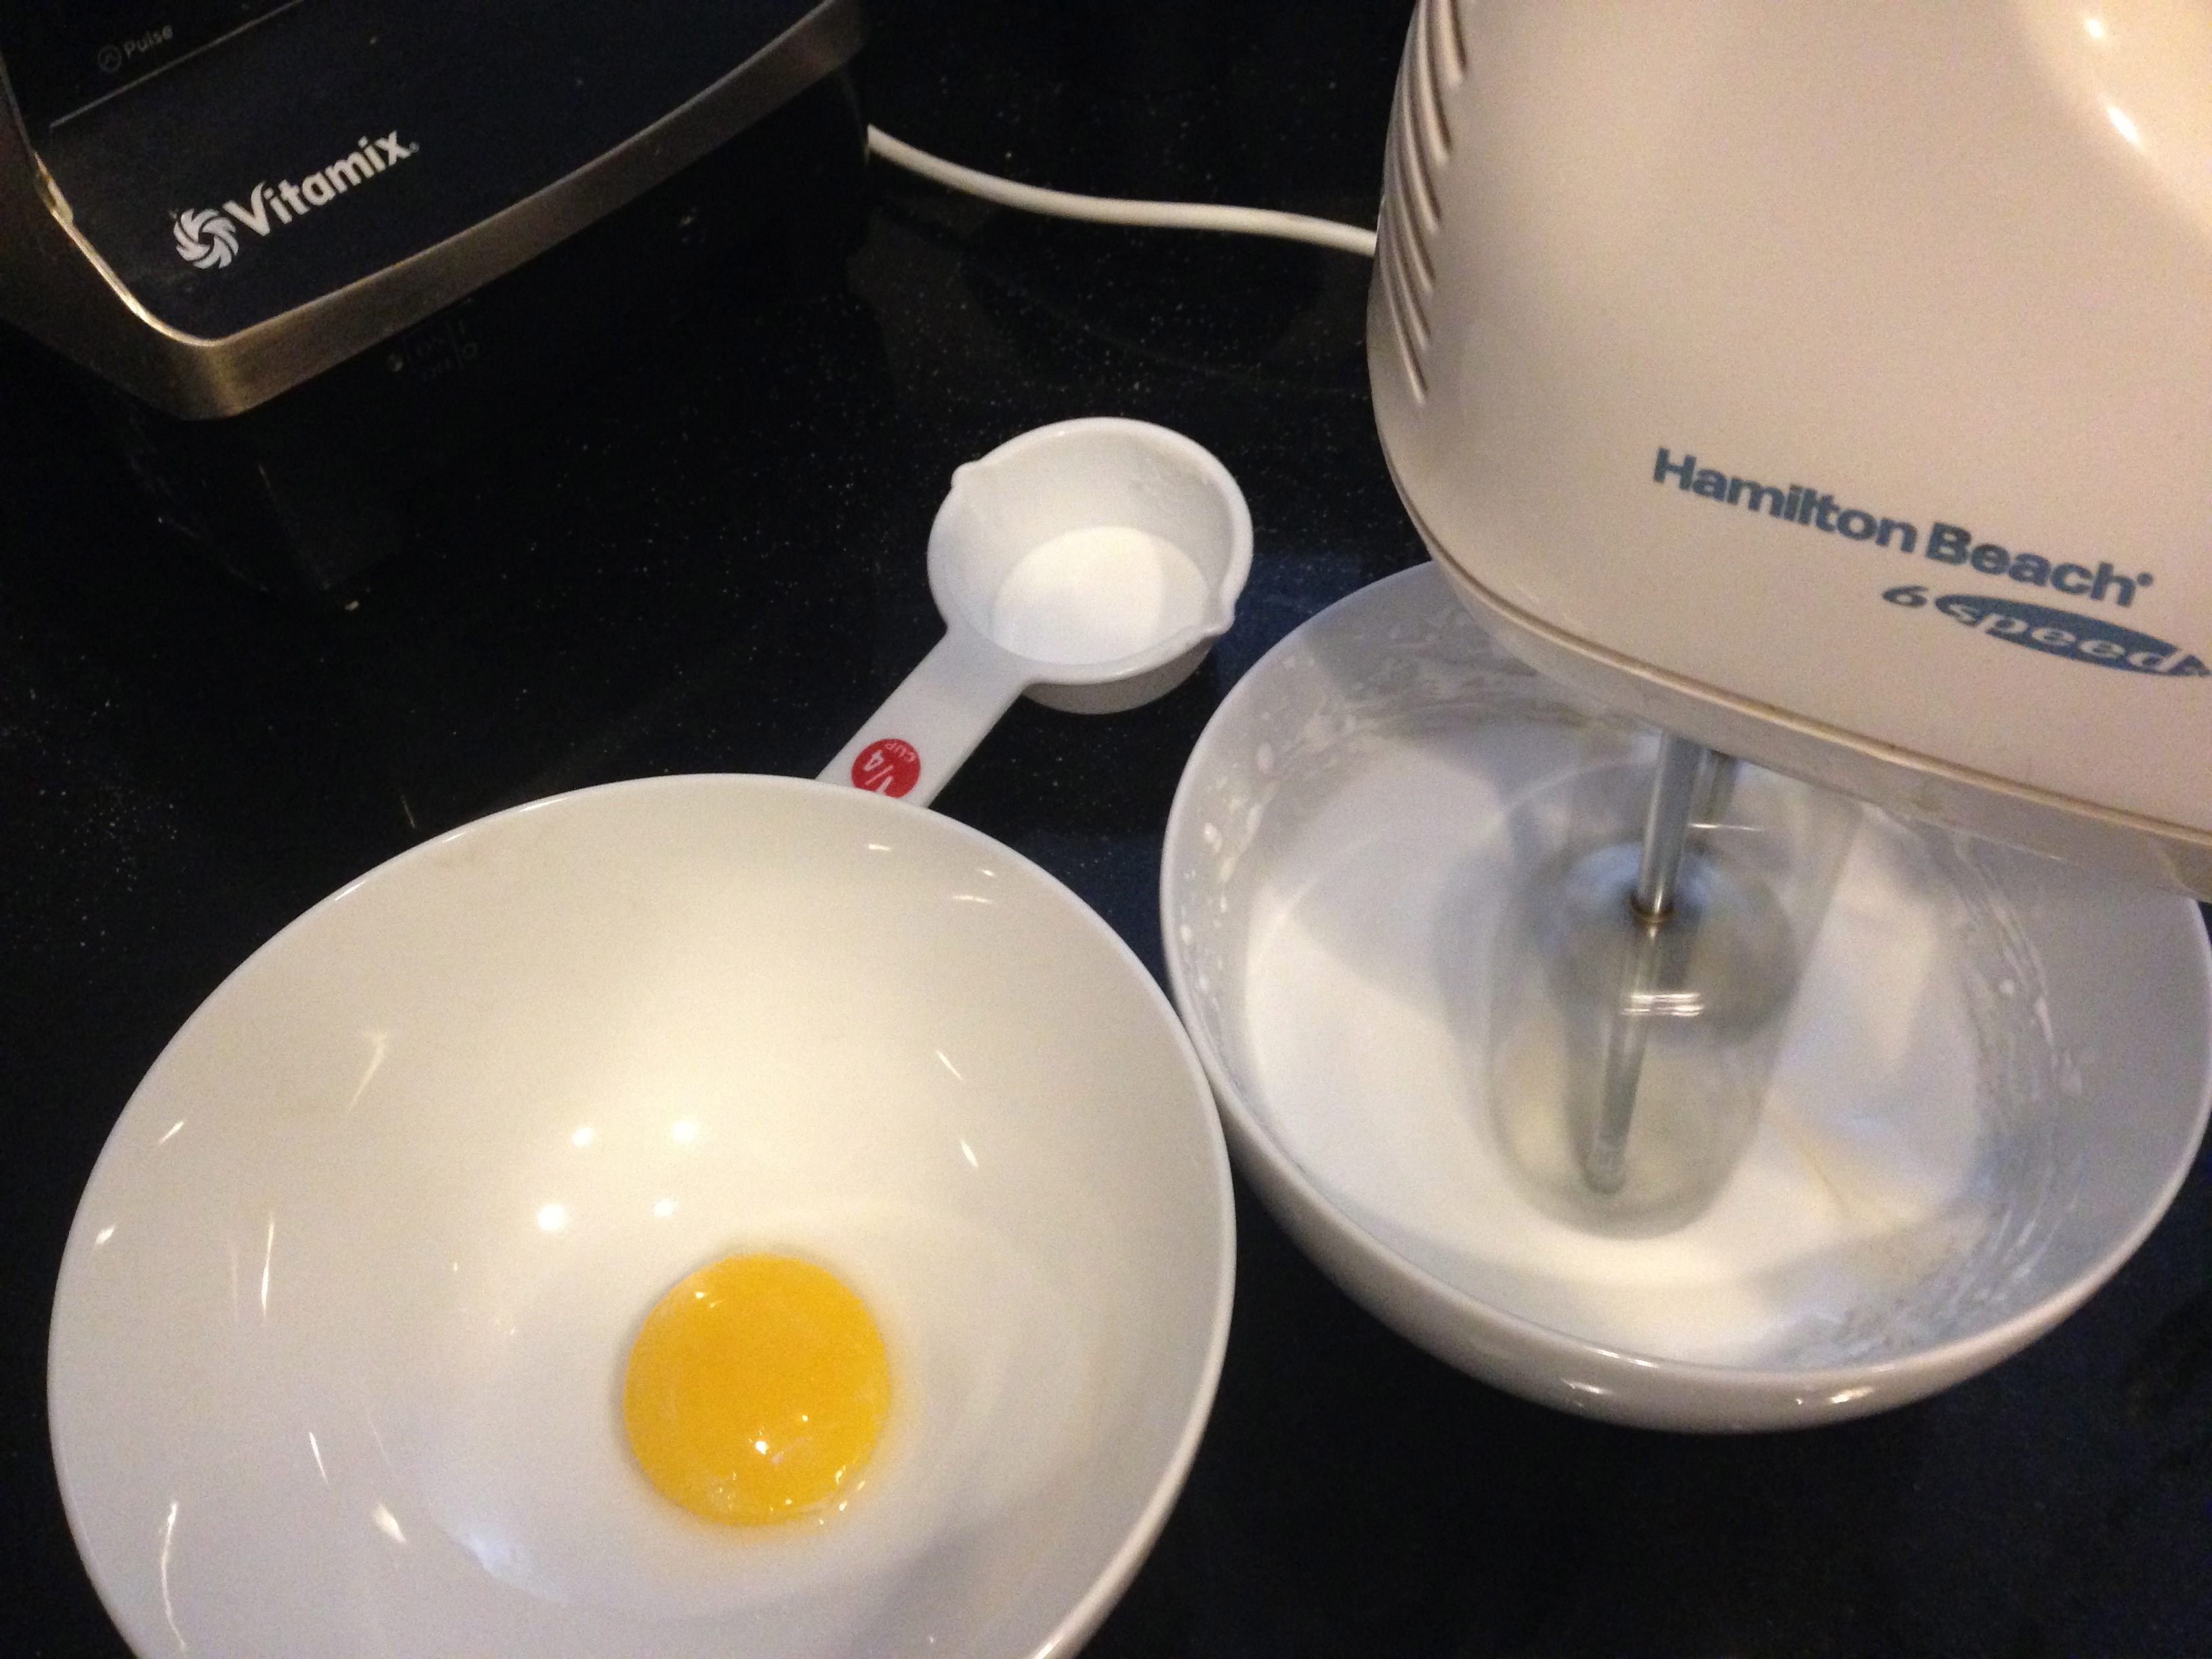 The recipe's 4 egg whites and yolks became 1 of each!